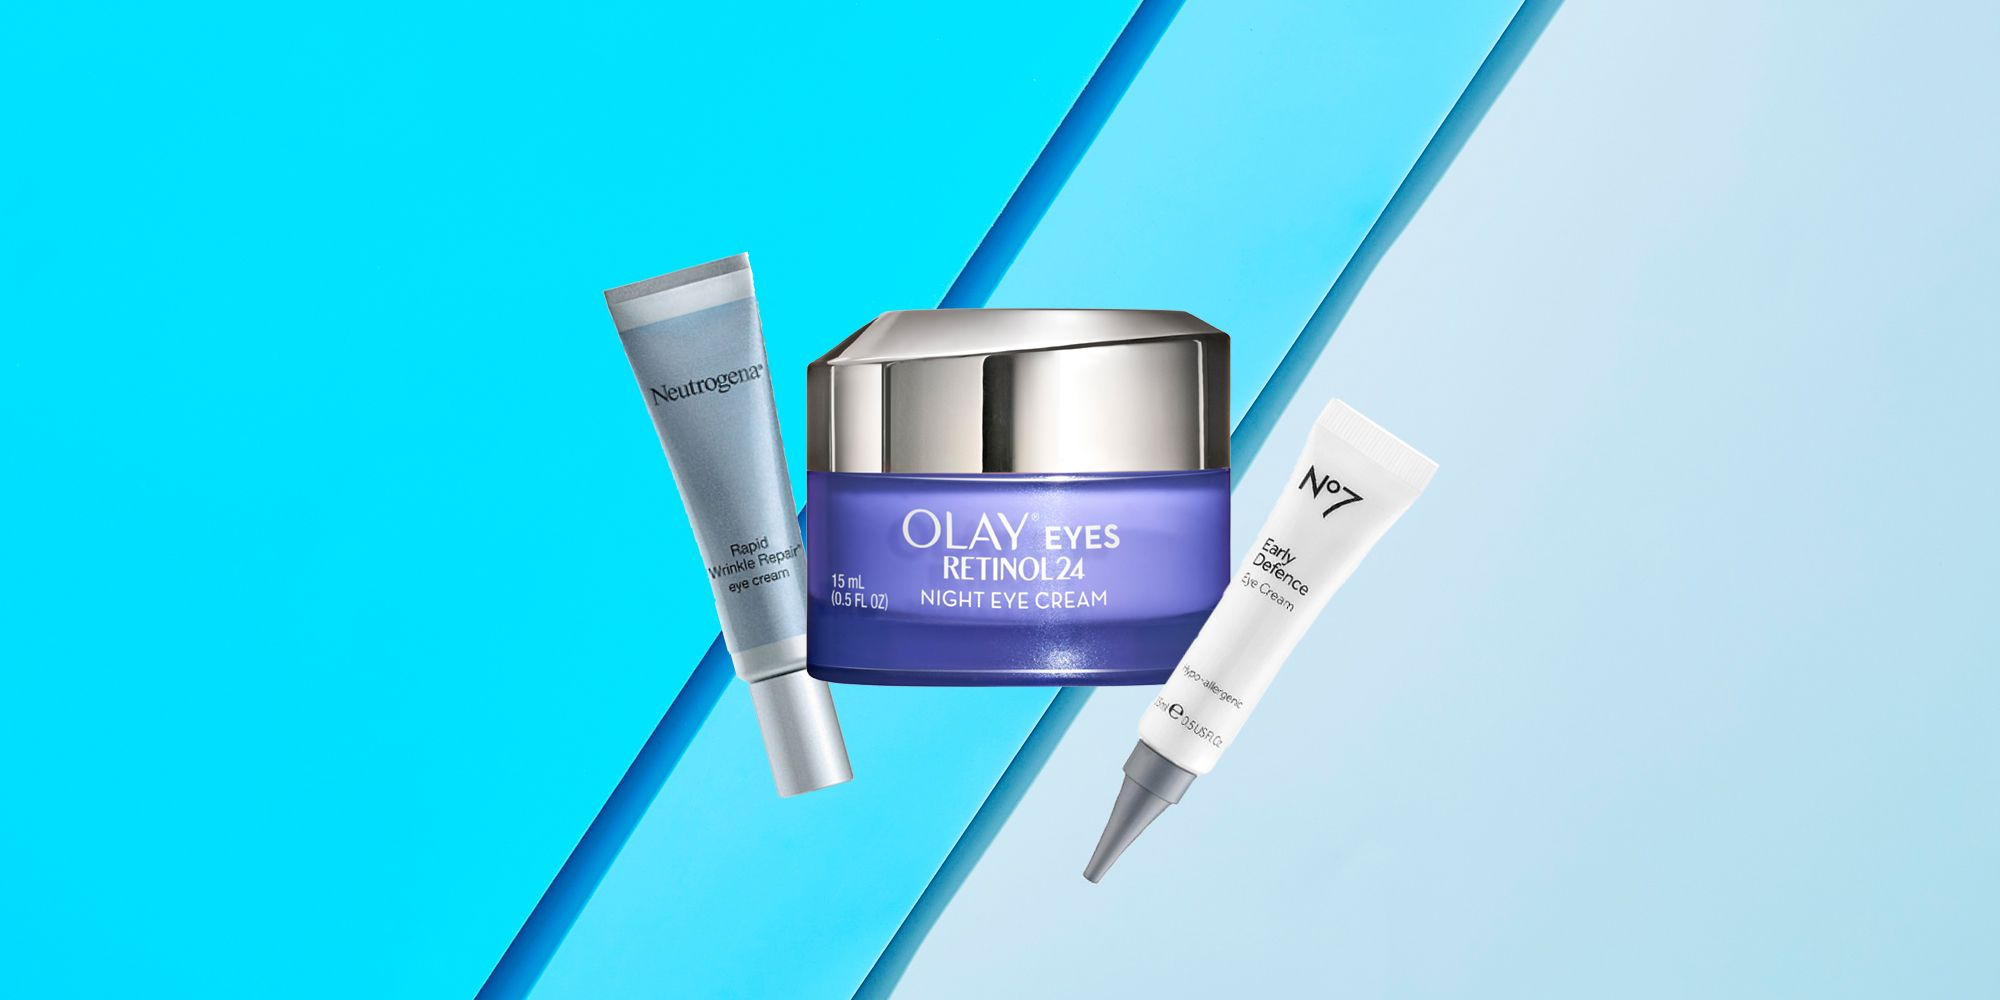 The 10 Best Retinol Eye Creams According To Dermatologists